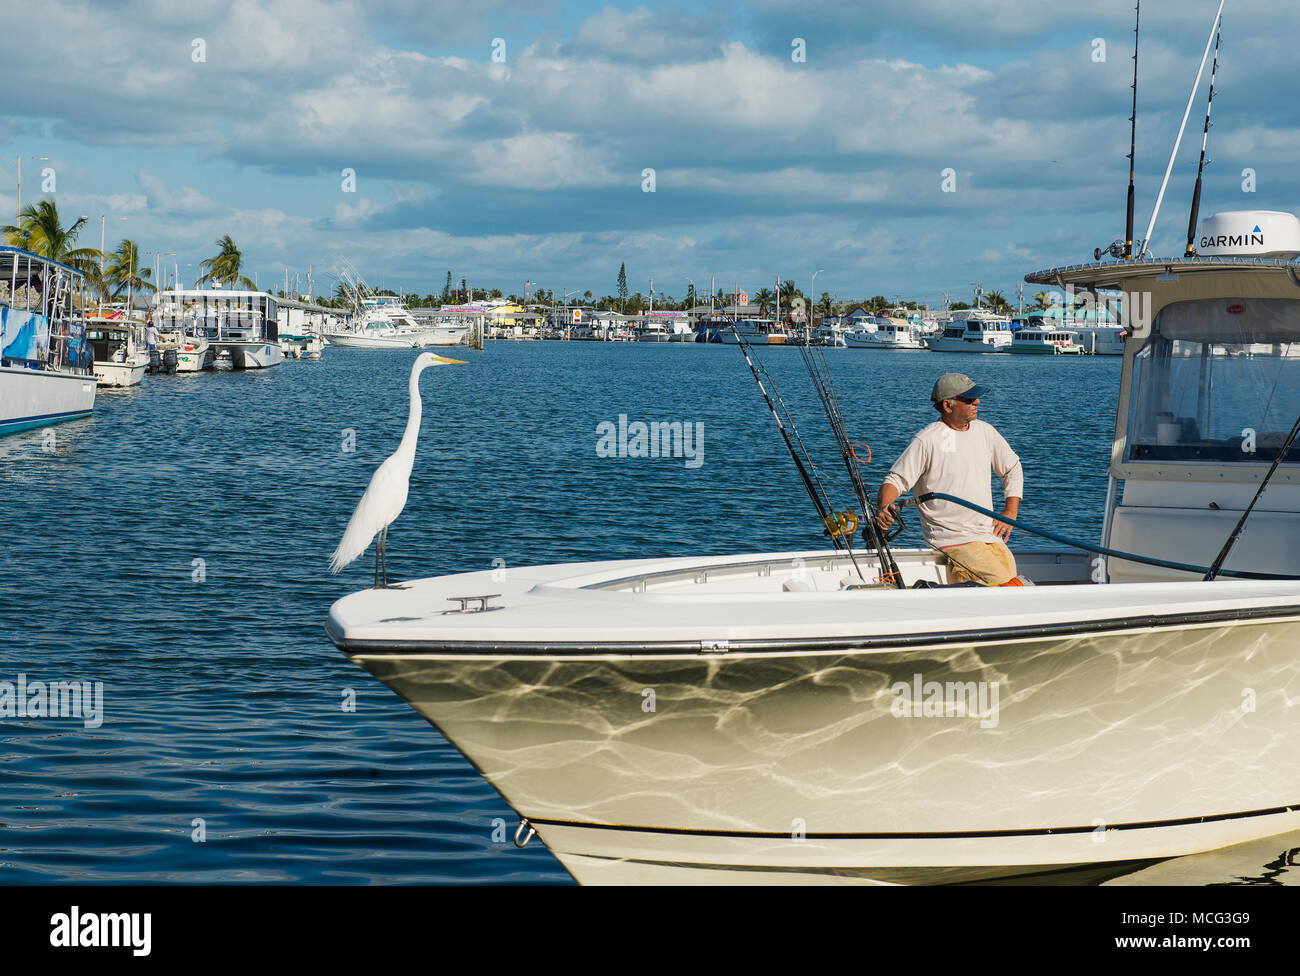 An egret sitting on a man's boat while he fills the fuel tank. Stock Photo